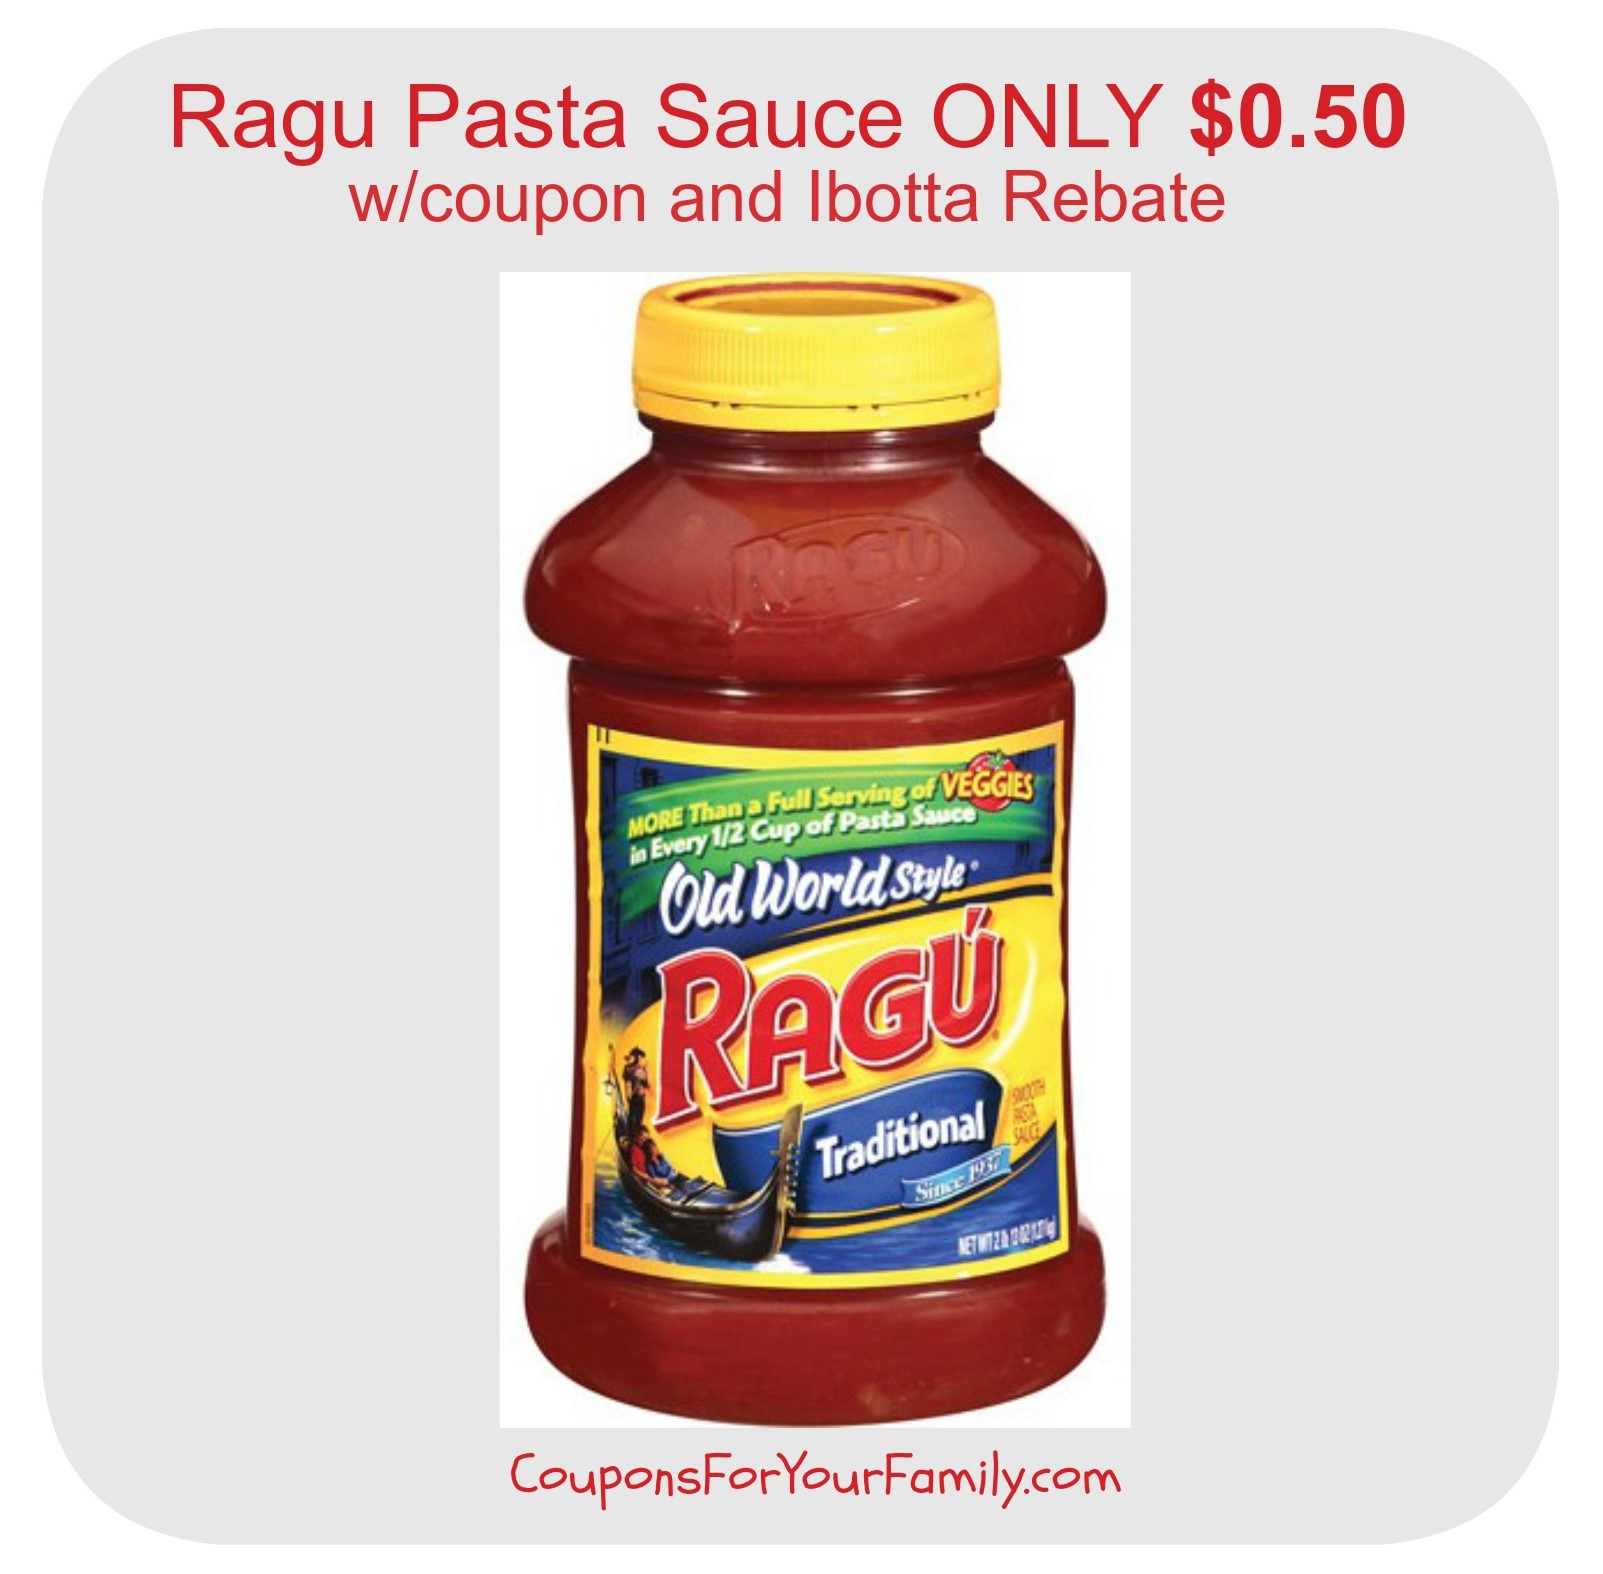 After coupon we can score Ragu Simply Pasta Sauce for FREE! We can also stock up on Ragu Pasta Sauce and Cheese Creations for as low as $ after coupon when you buy 2! Please note all the Insert coupons expire Sunday, the FREEBIE Deal is one day only. Here is .